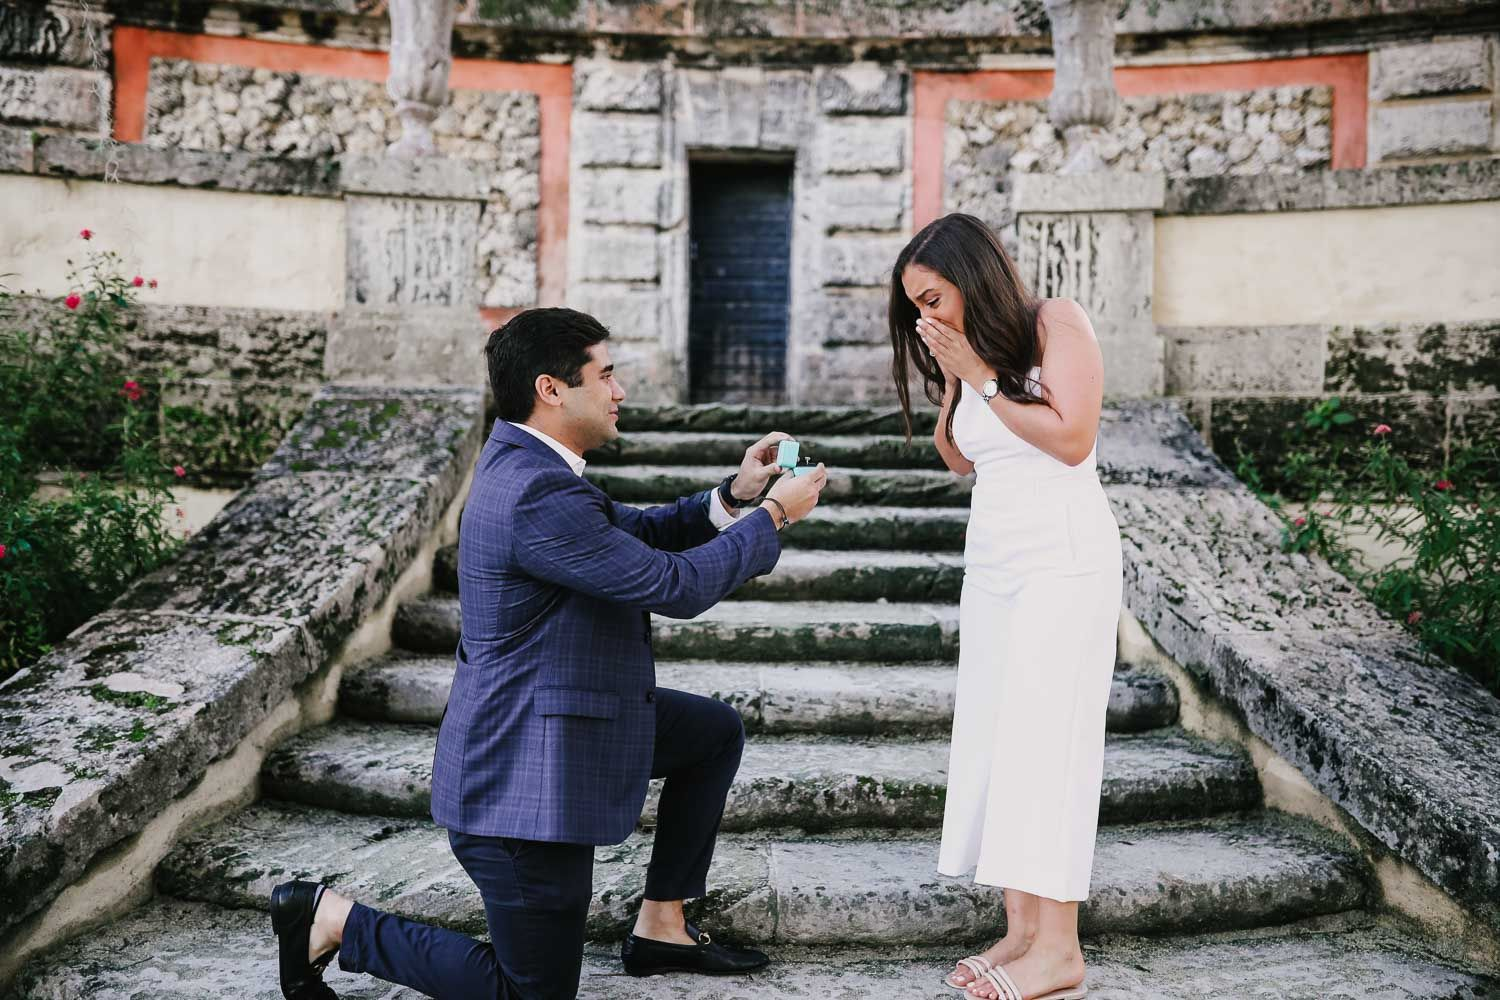 6a16bcb08314bc795ccb1d22fde8c20c - Vizcaya Museum And Gardens Propose Miami